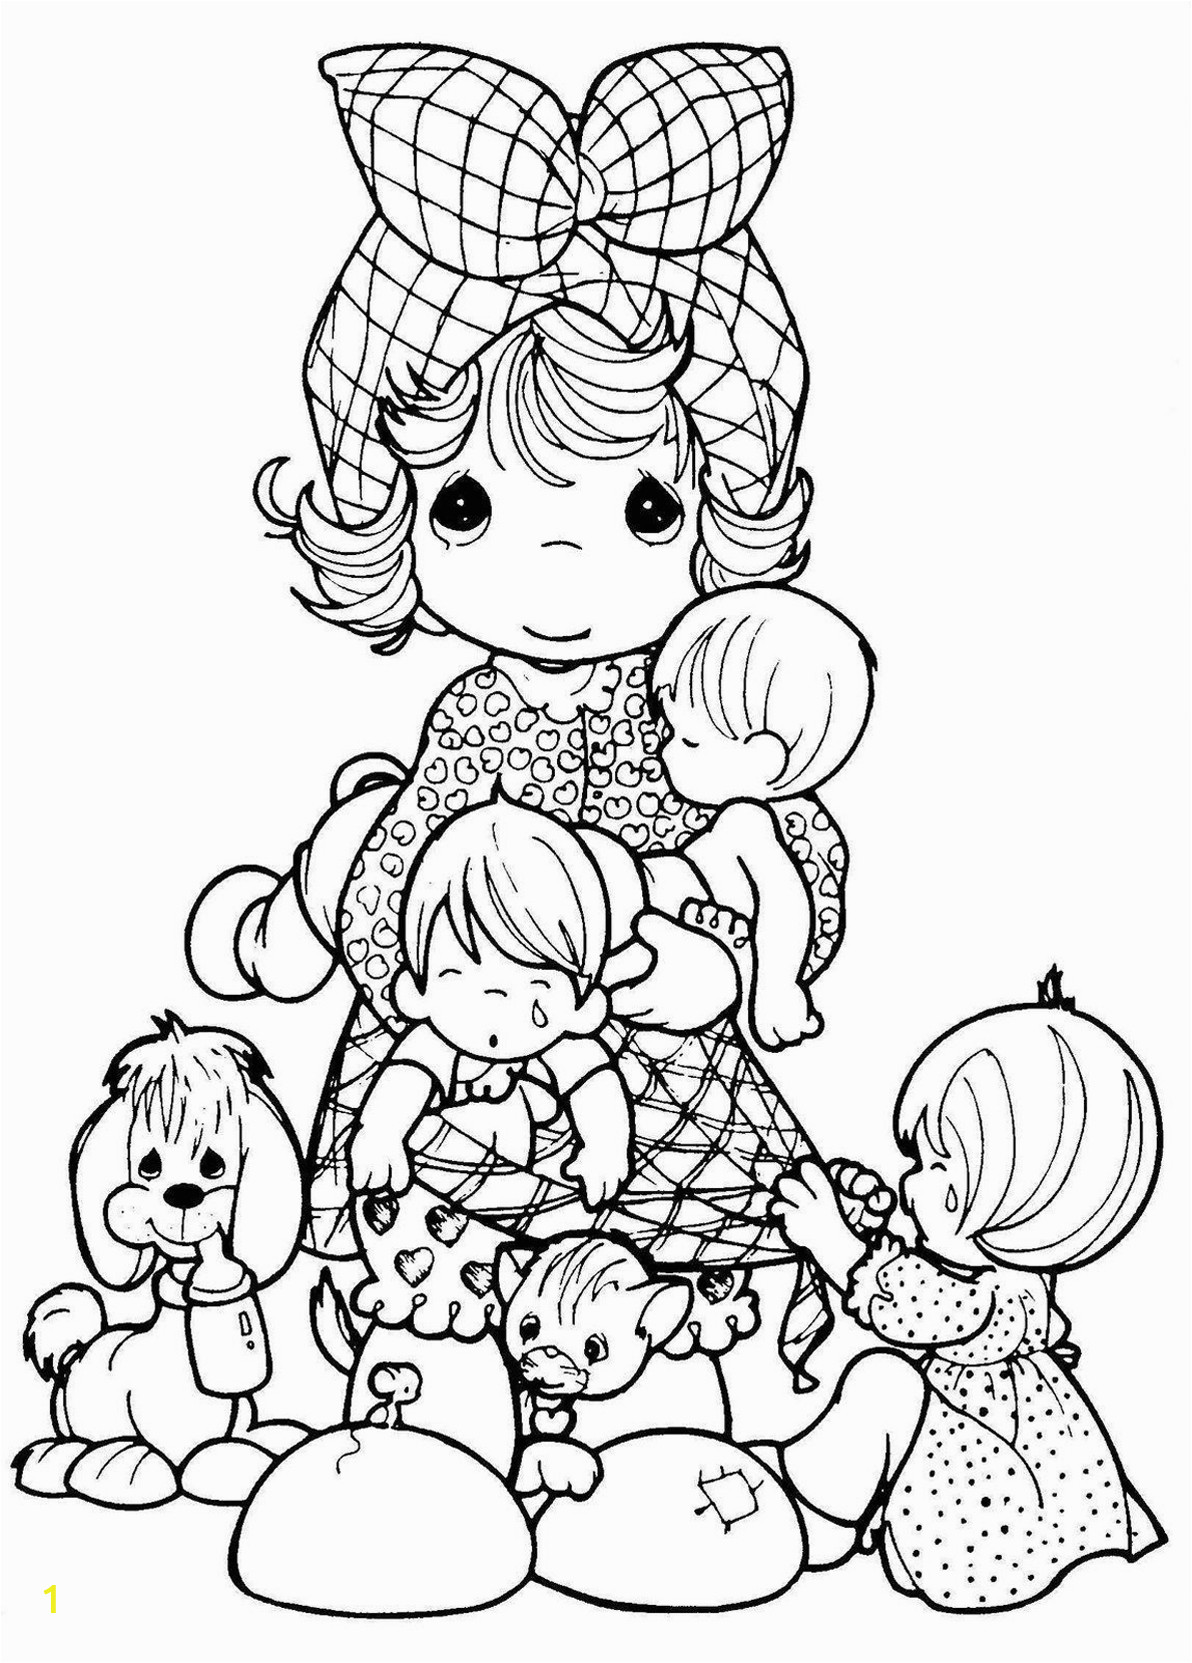 Precious Moments Coloring Pages for Adults Precious Moments Vintage Adult Coloring Pages